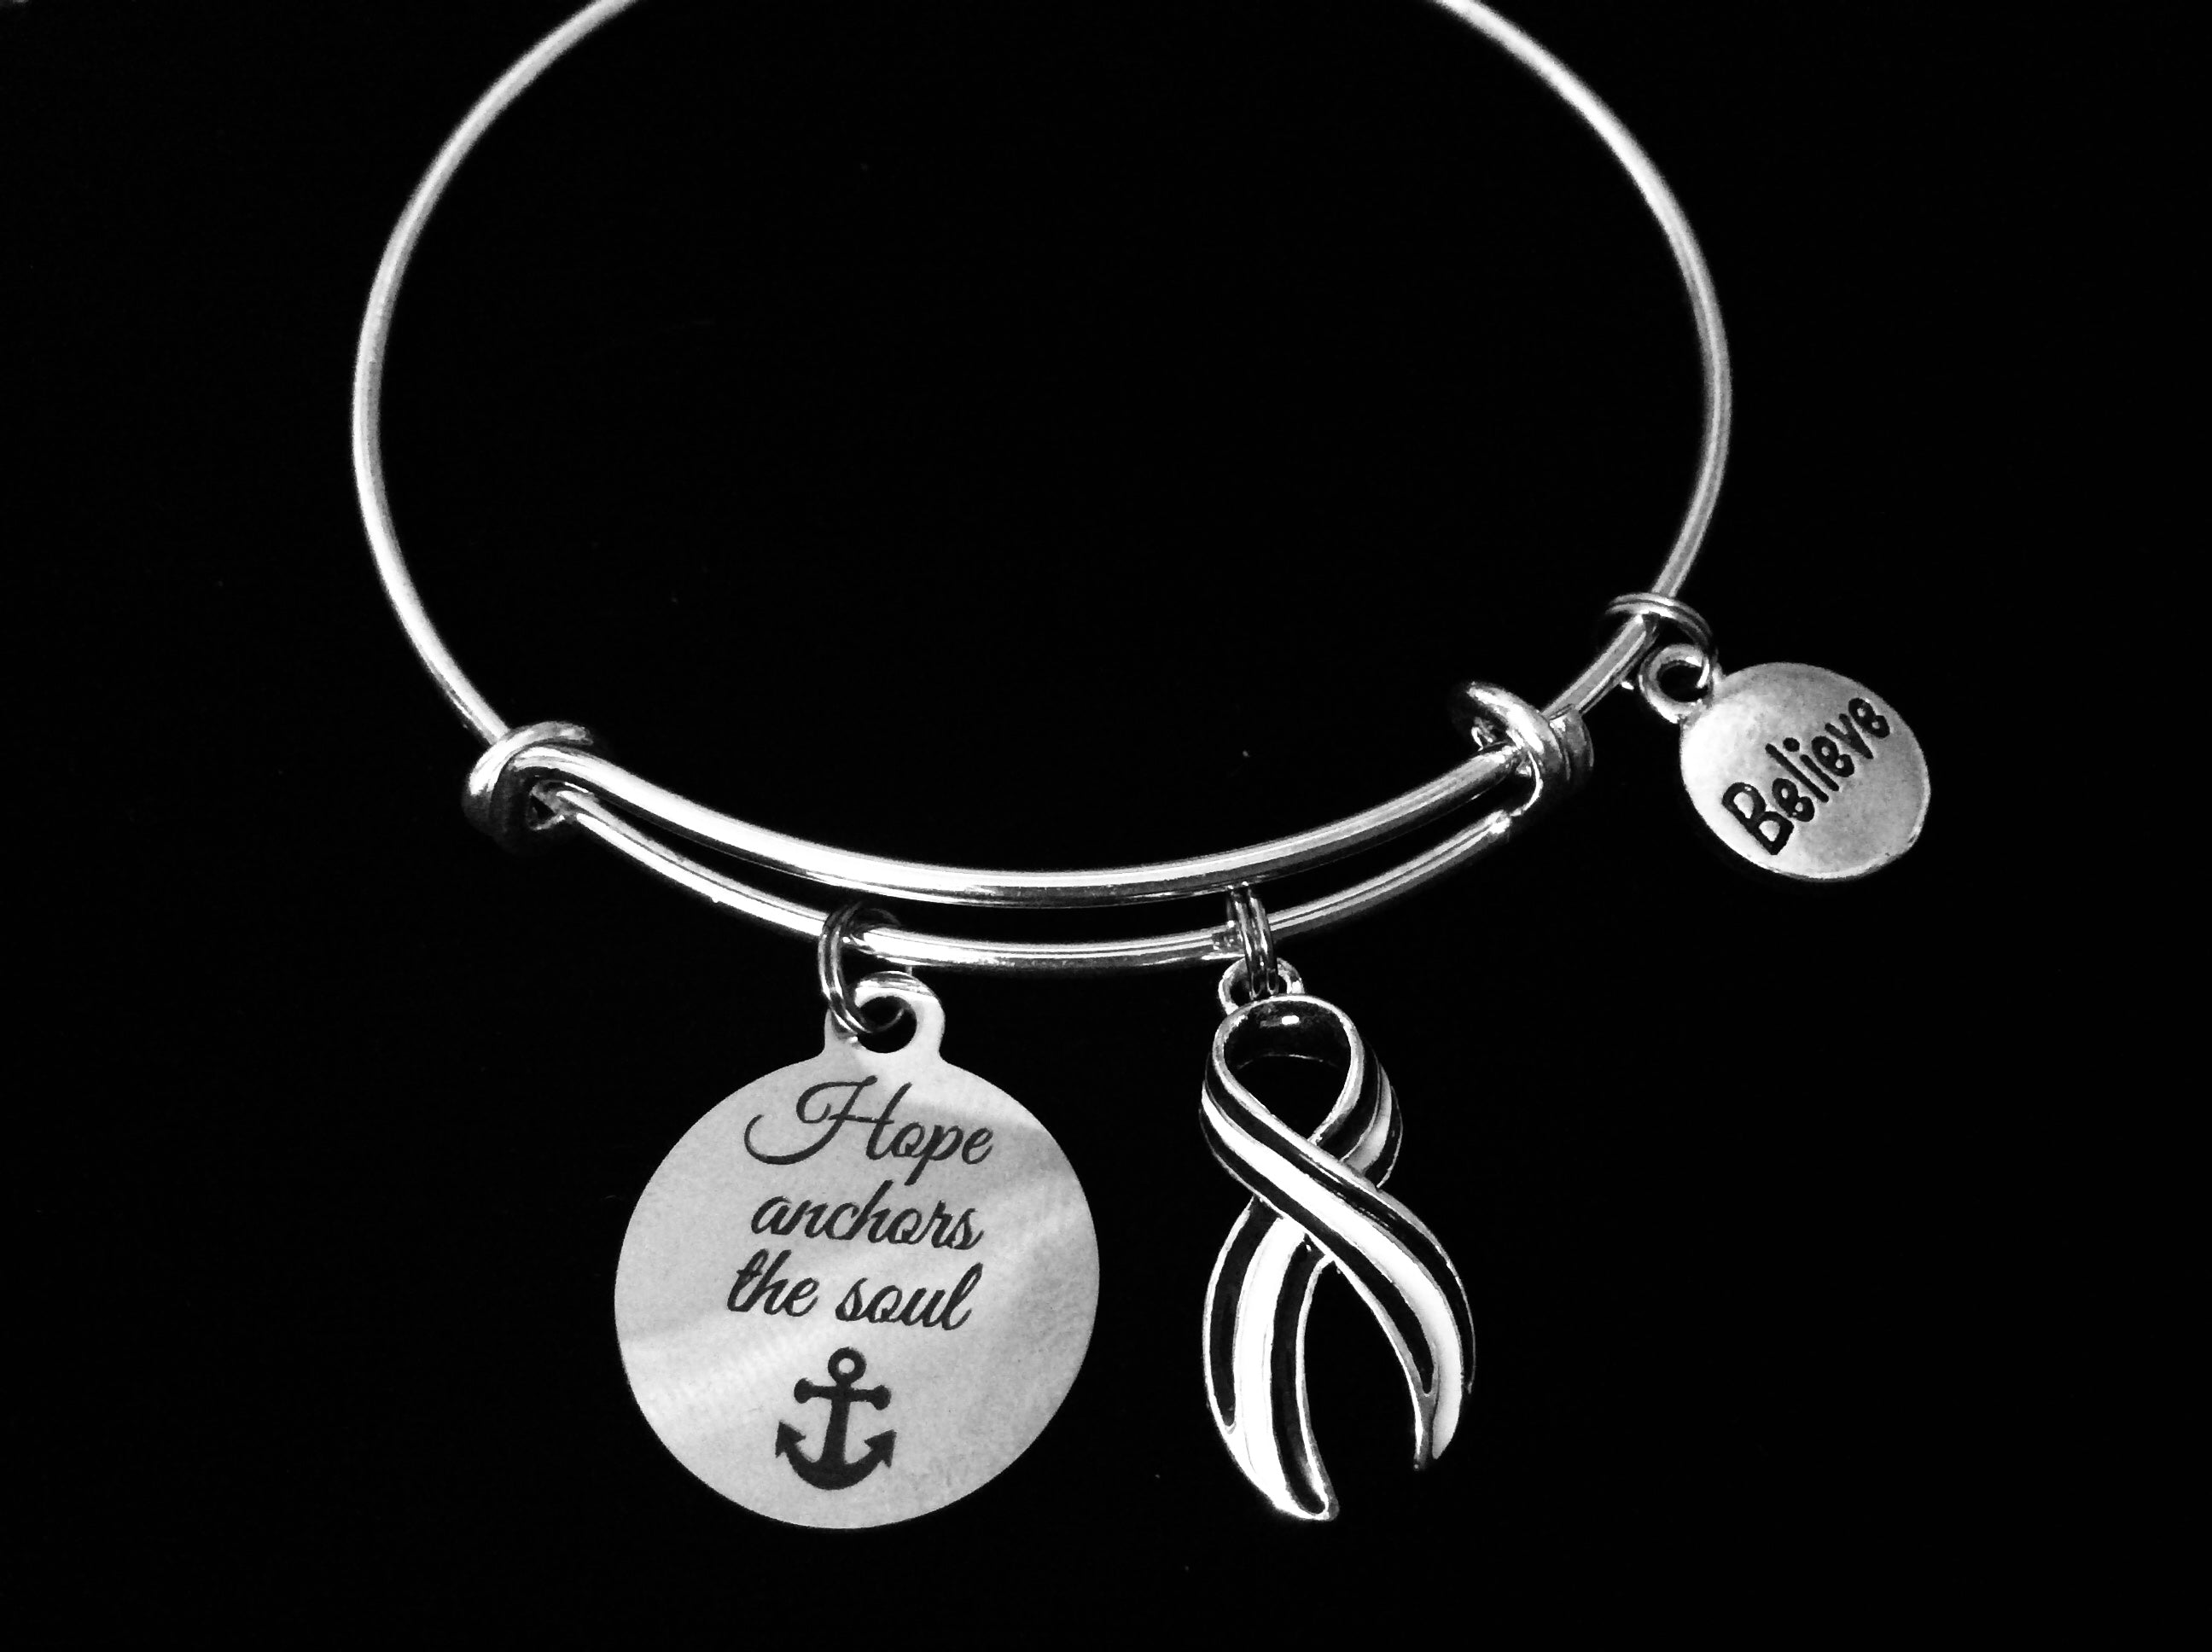 ALS bracelet Lou Gehrig's Disease Charm Bracelet Navy and White Awareness  Ribbon Silver Expandable Adjustable Bangle One Size Fits All Gift